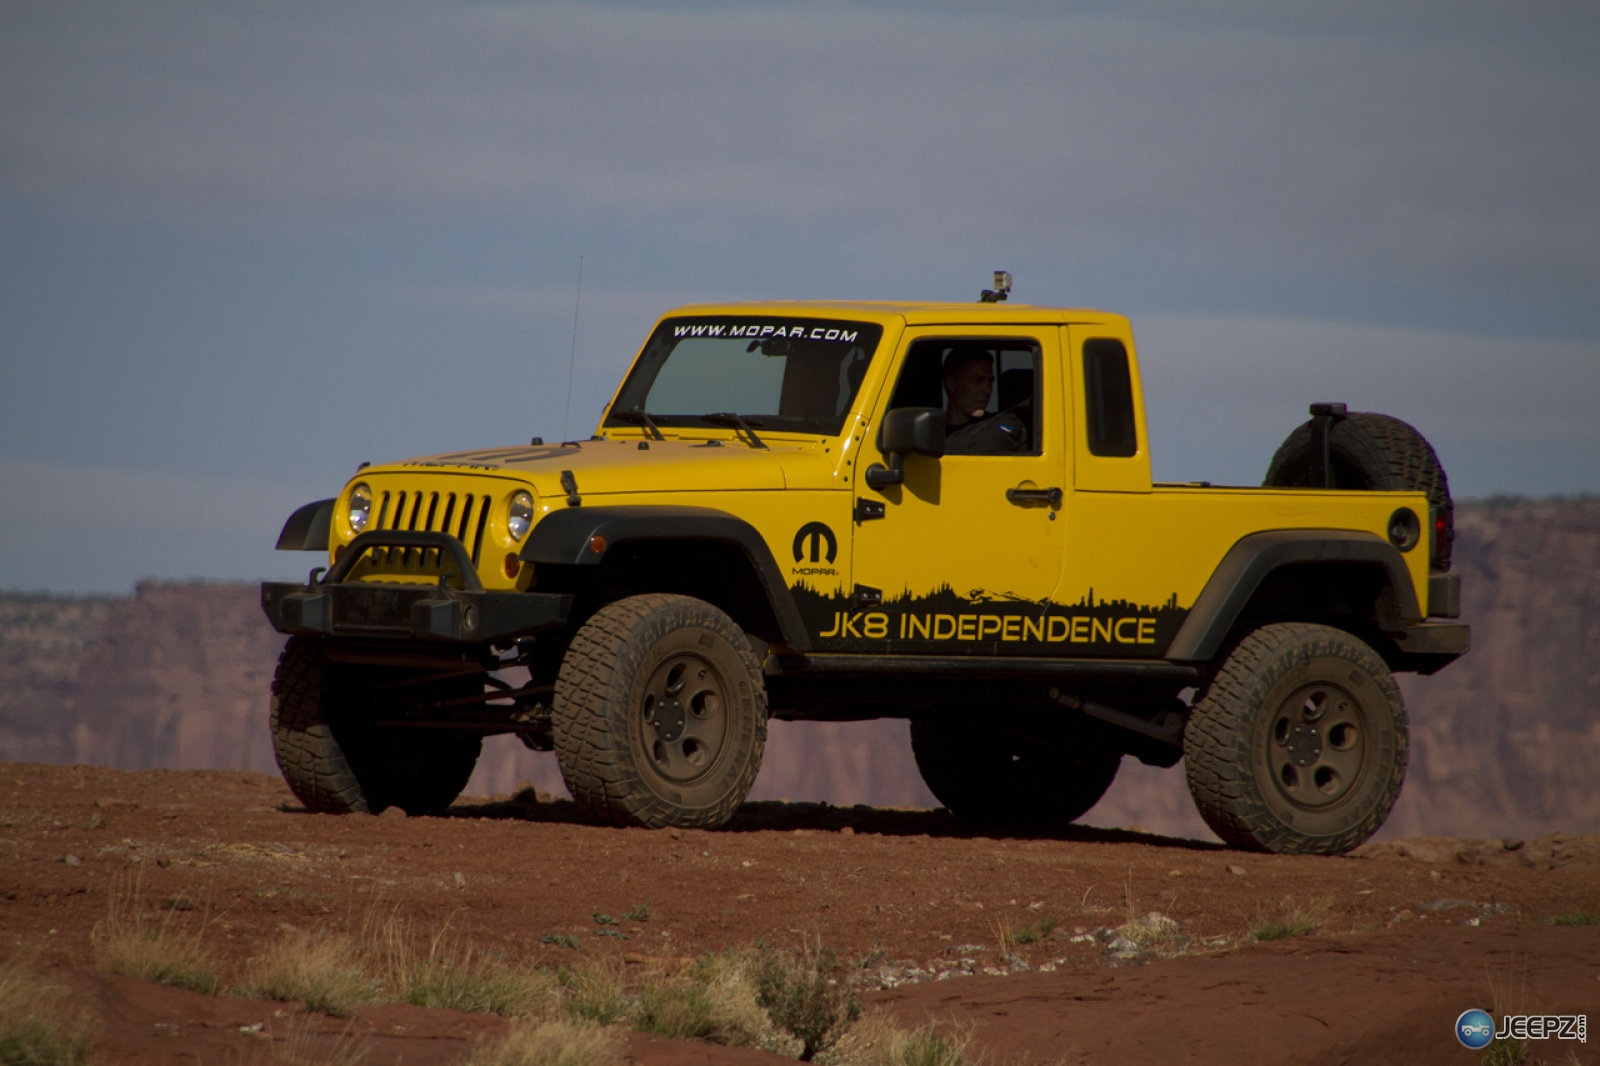 Jeep Announces New Wrangler Unlimited Pickup... In Kit Form